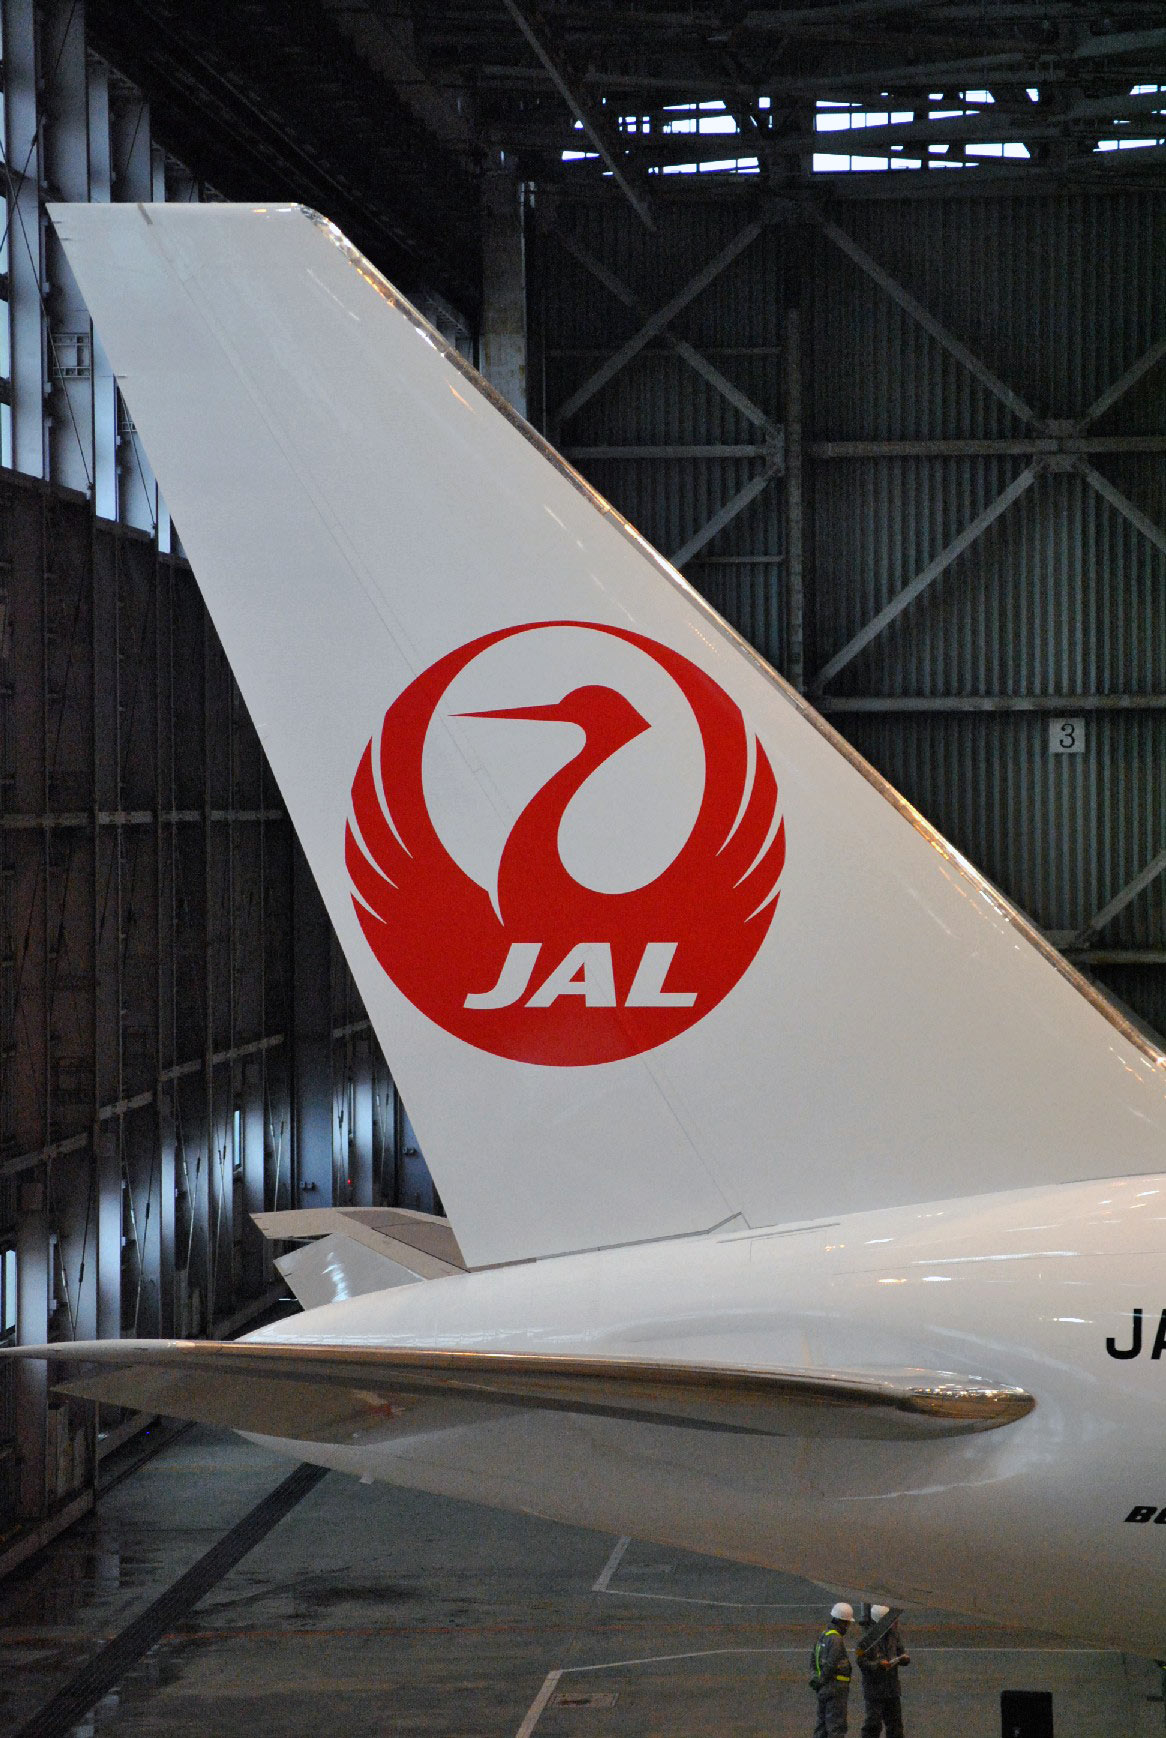 JAL crane logo on tail